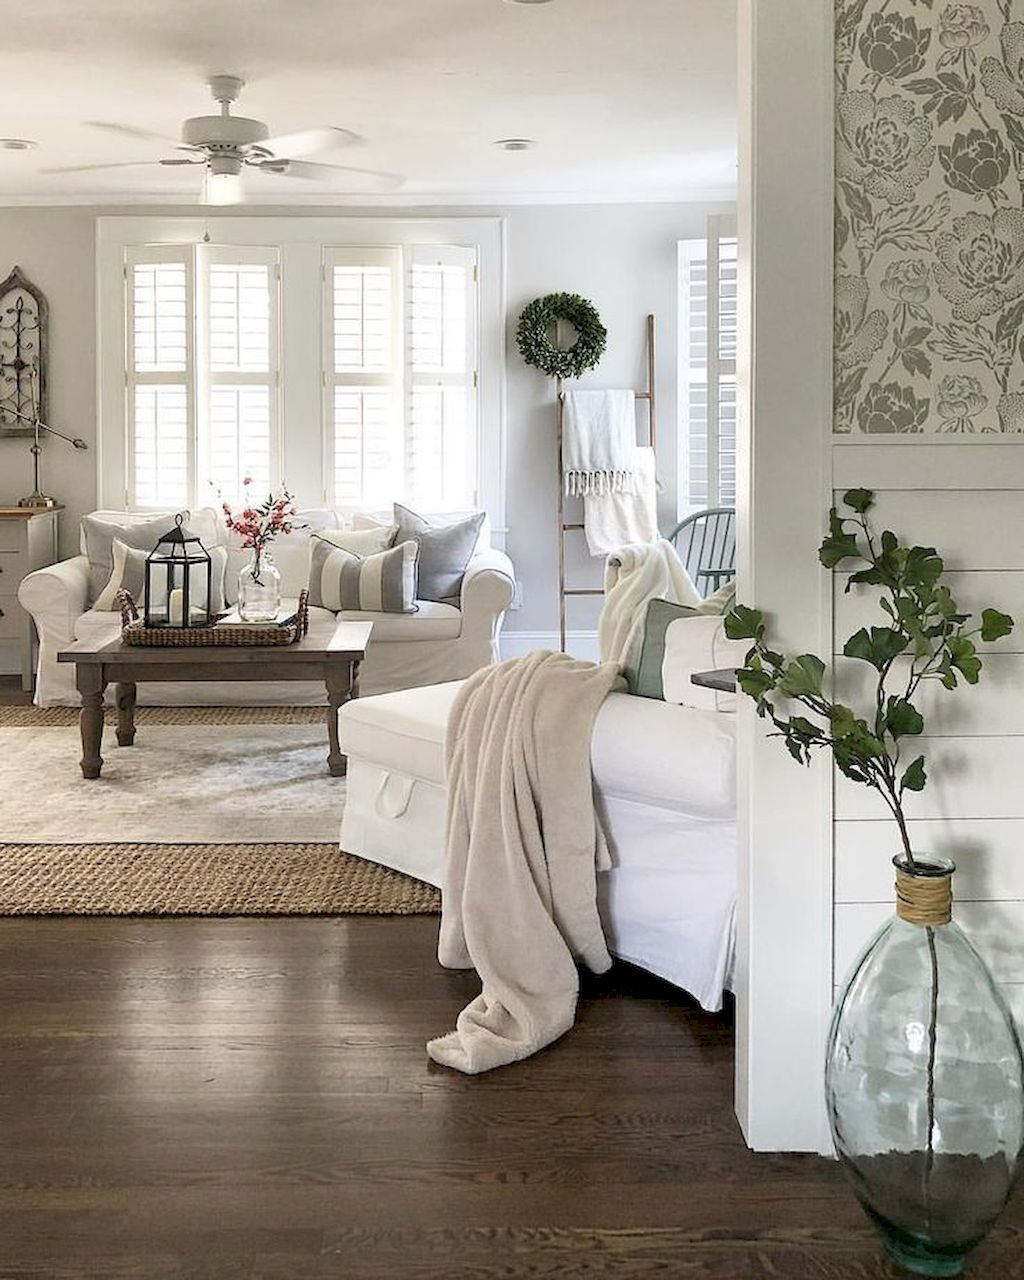 85 Best Farmhouse Living Room with Rug Decor Ideas images